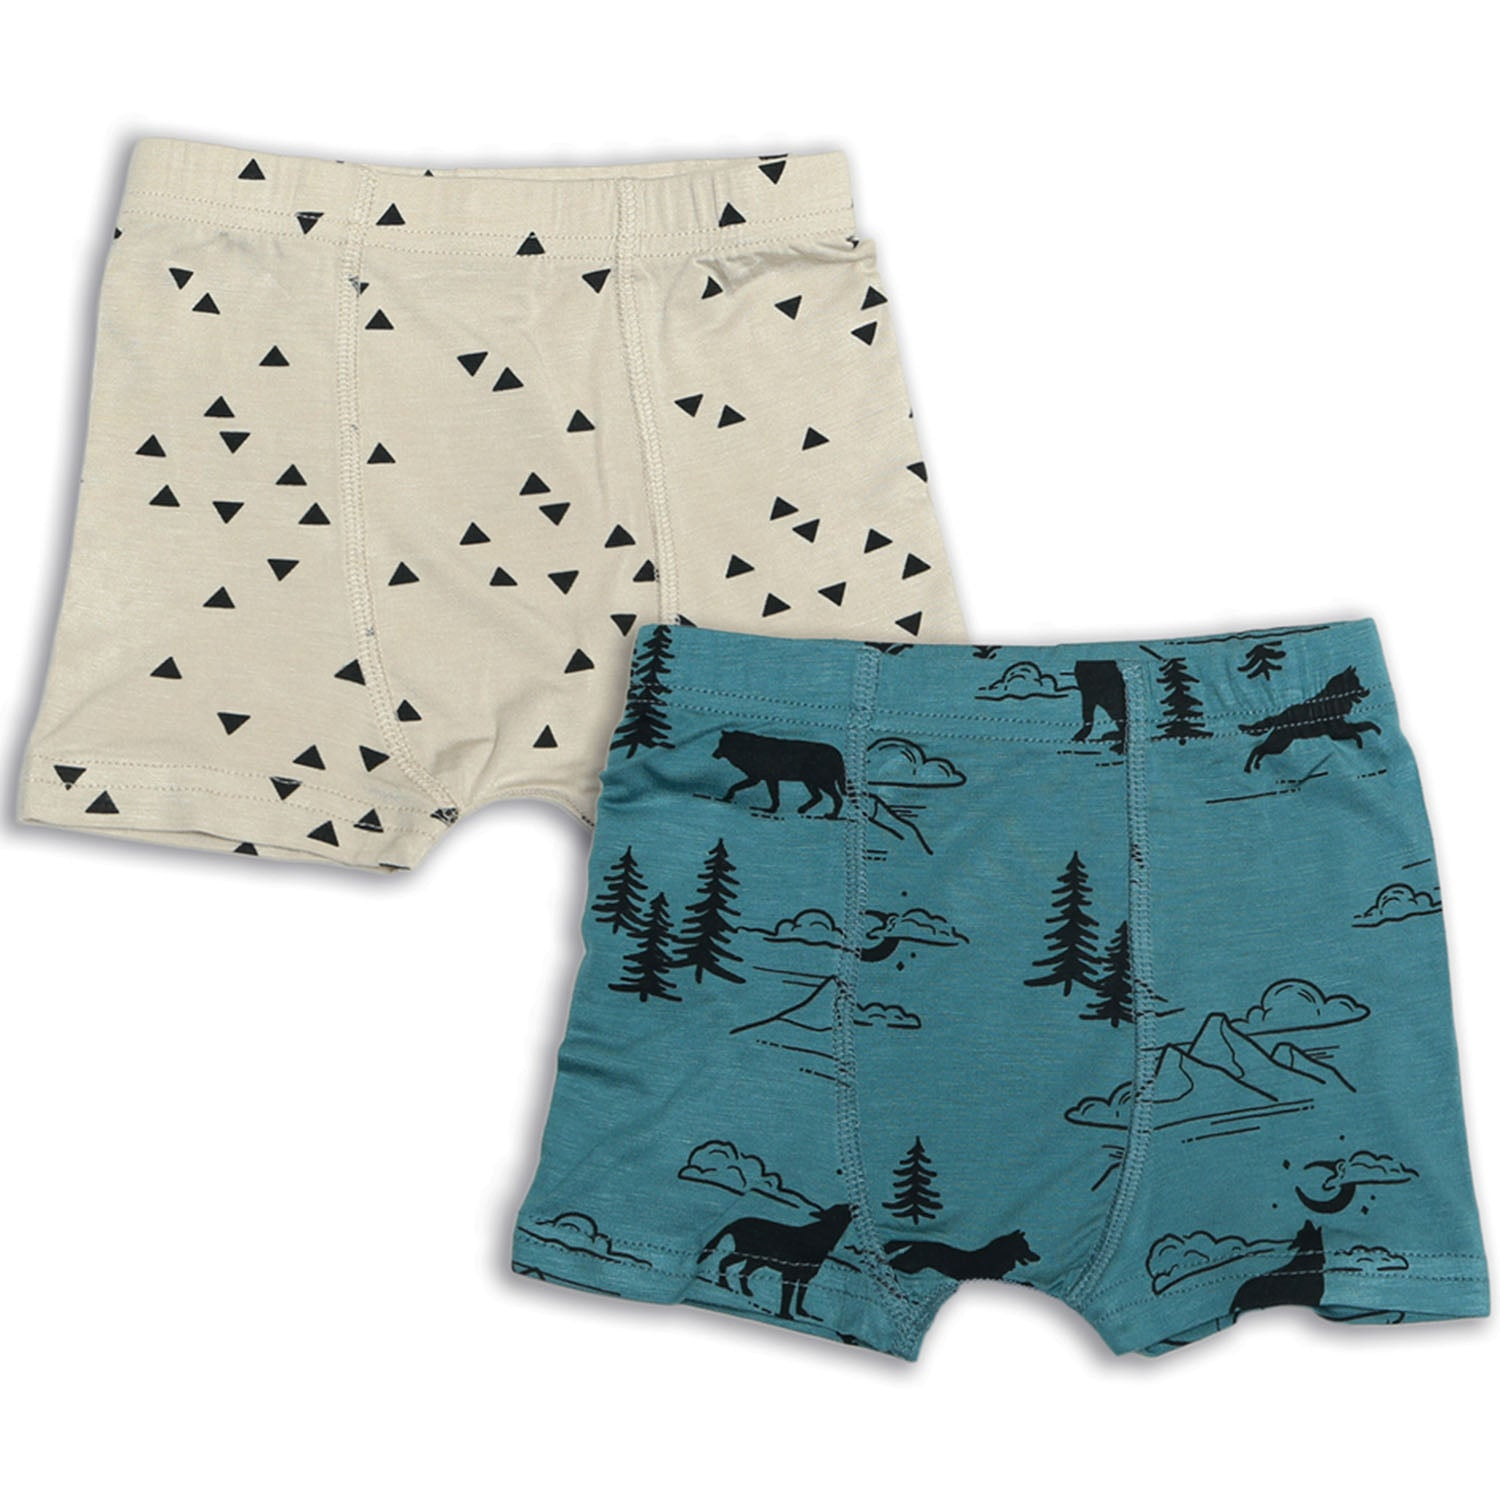 Silkberry Baby Bamboo Boys Underwear Shorts 2 PK - Call of the Wild / Apex